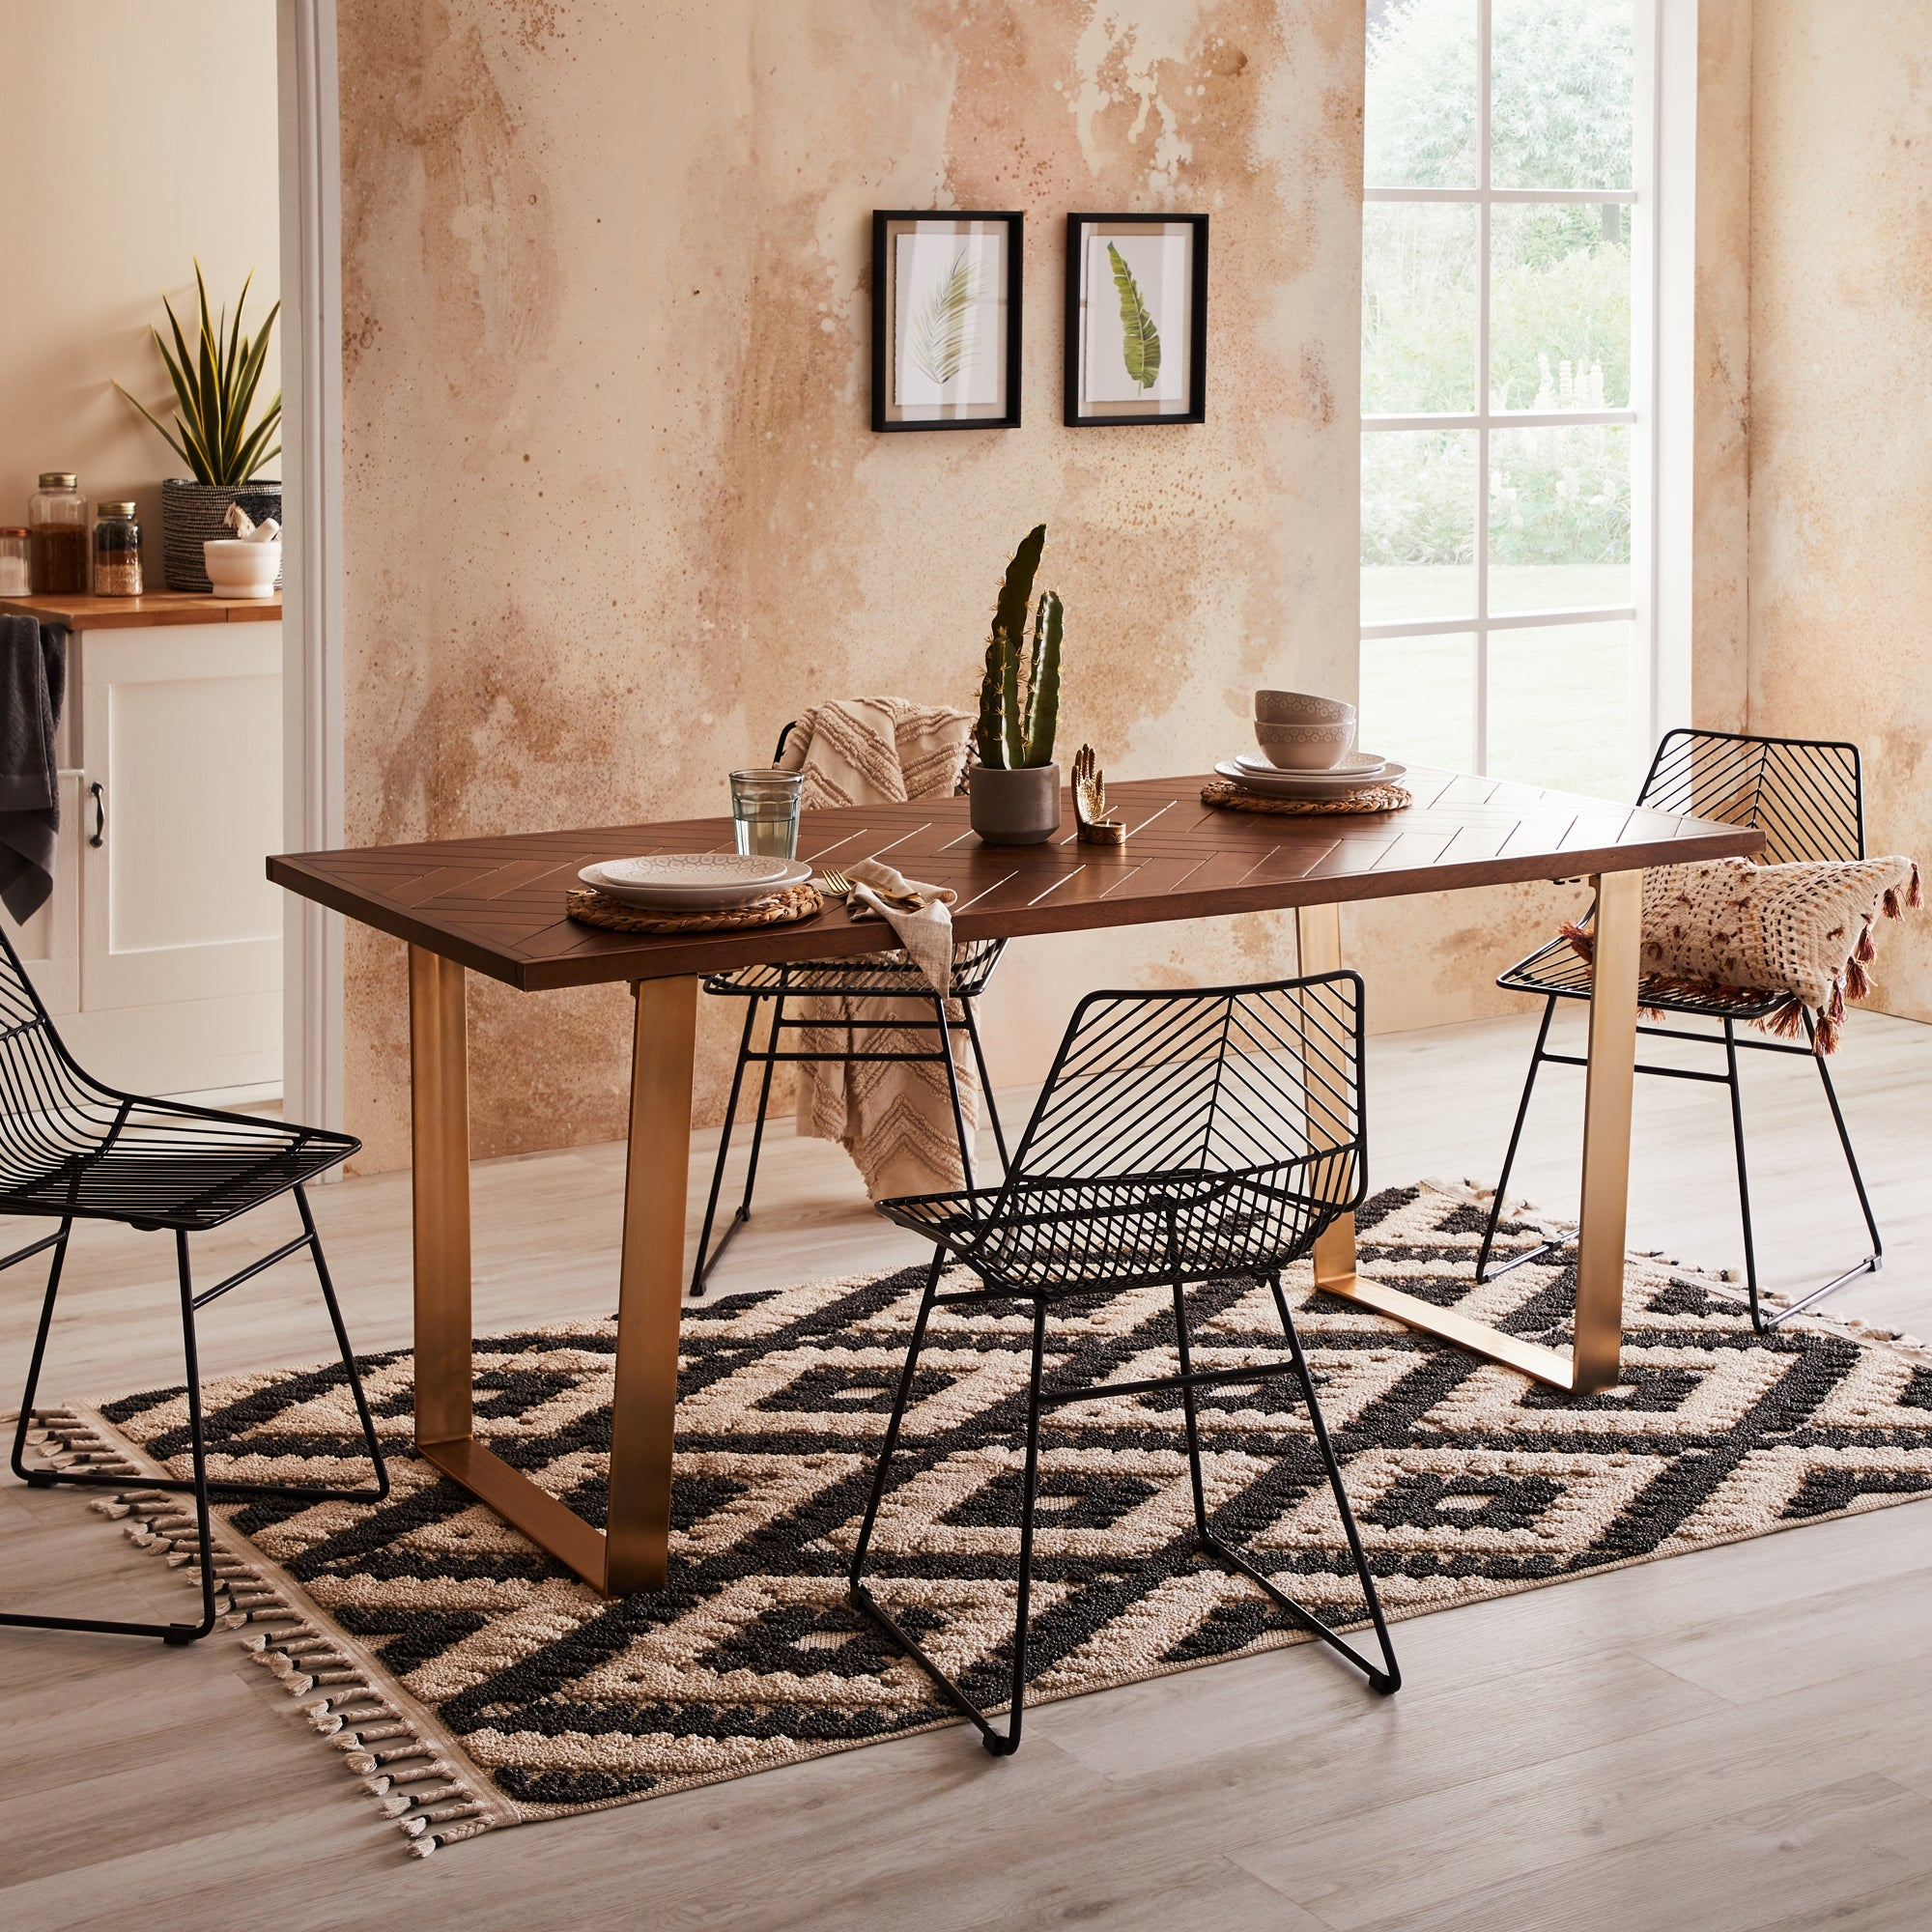 Anya Large Dining Table Brown